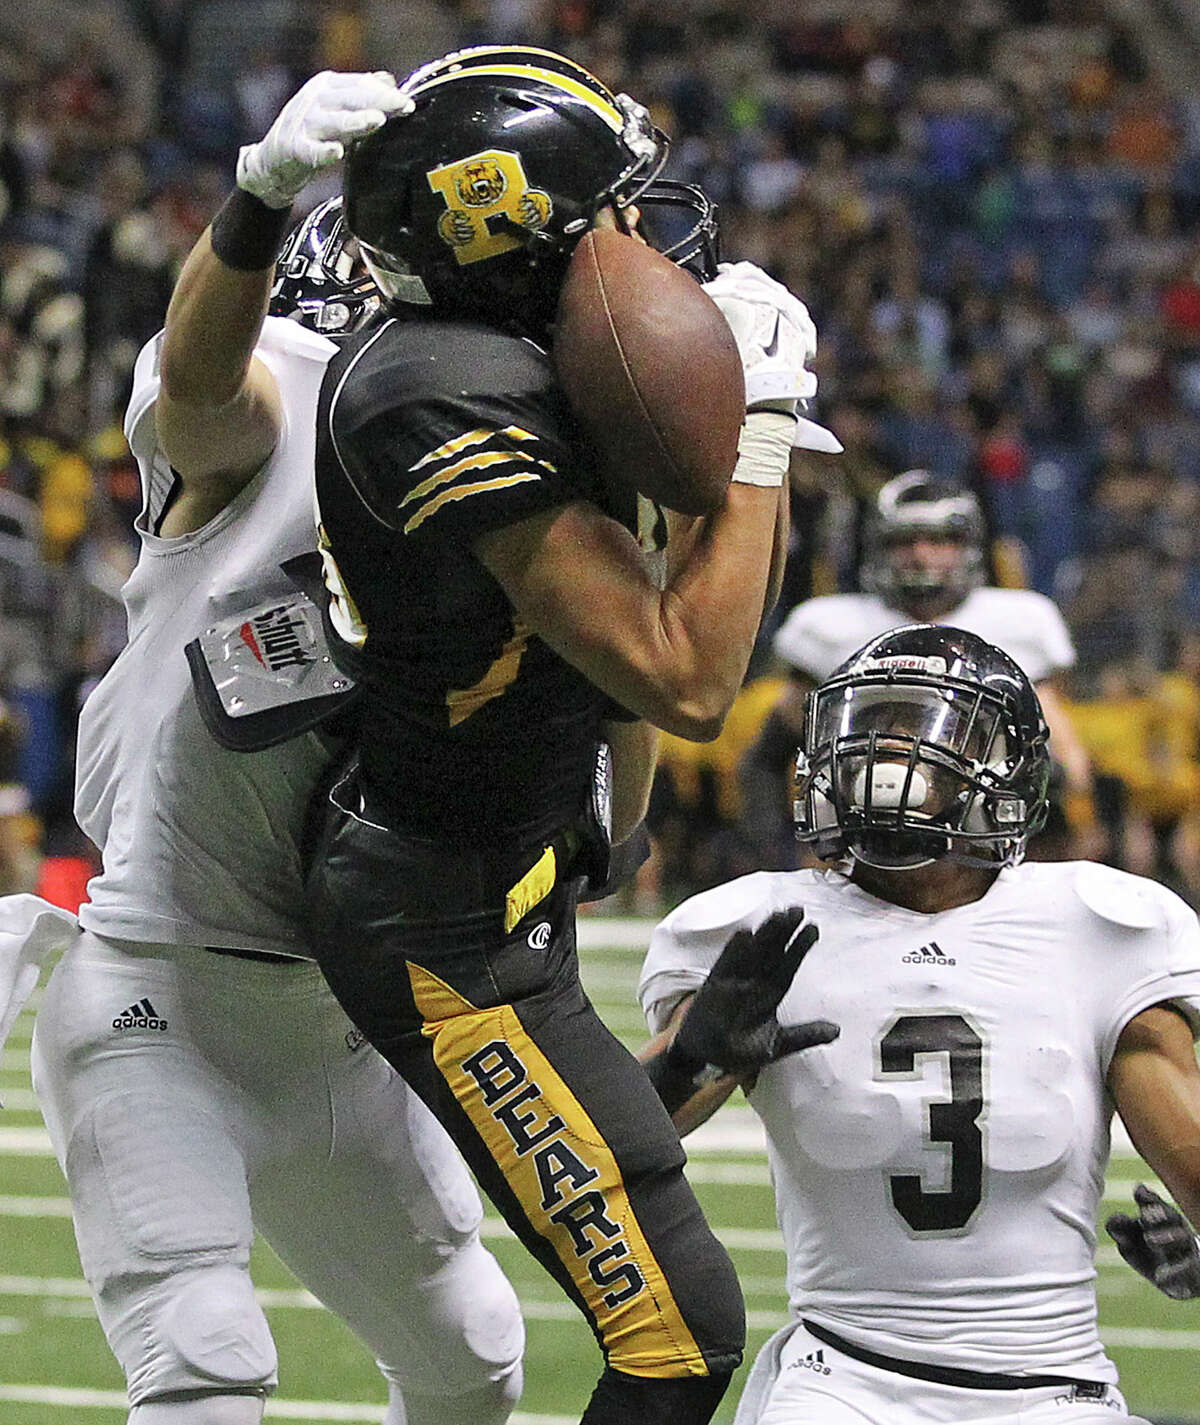 Bear receiver Dayne Thomas can't make the catch near the goal as defenders Mark Frankhouser (left) and Malik Perez pressure as Steele plays Brennan at the Alamodome in second round 6A high school Division I I playoff action on November 22, 2014.